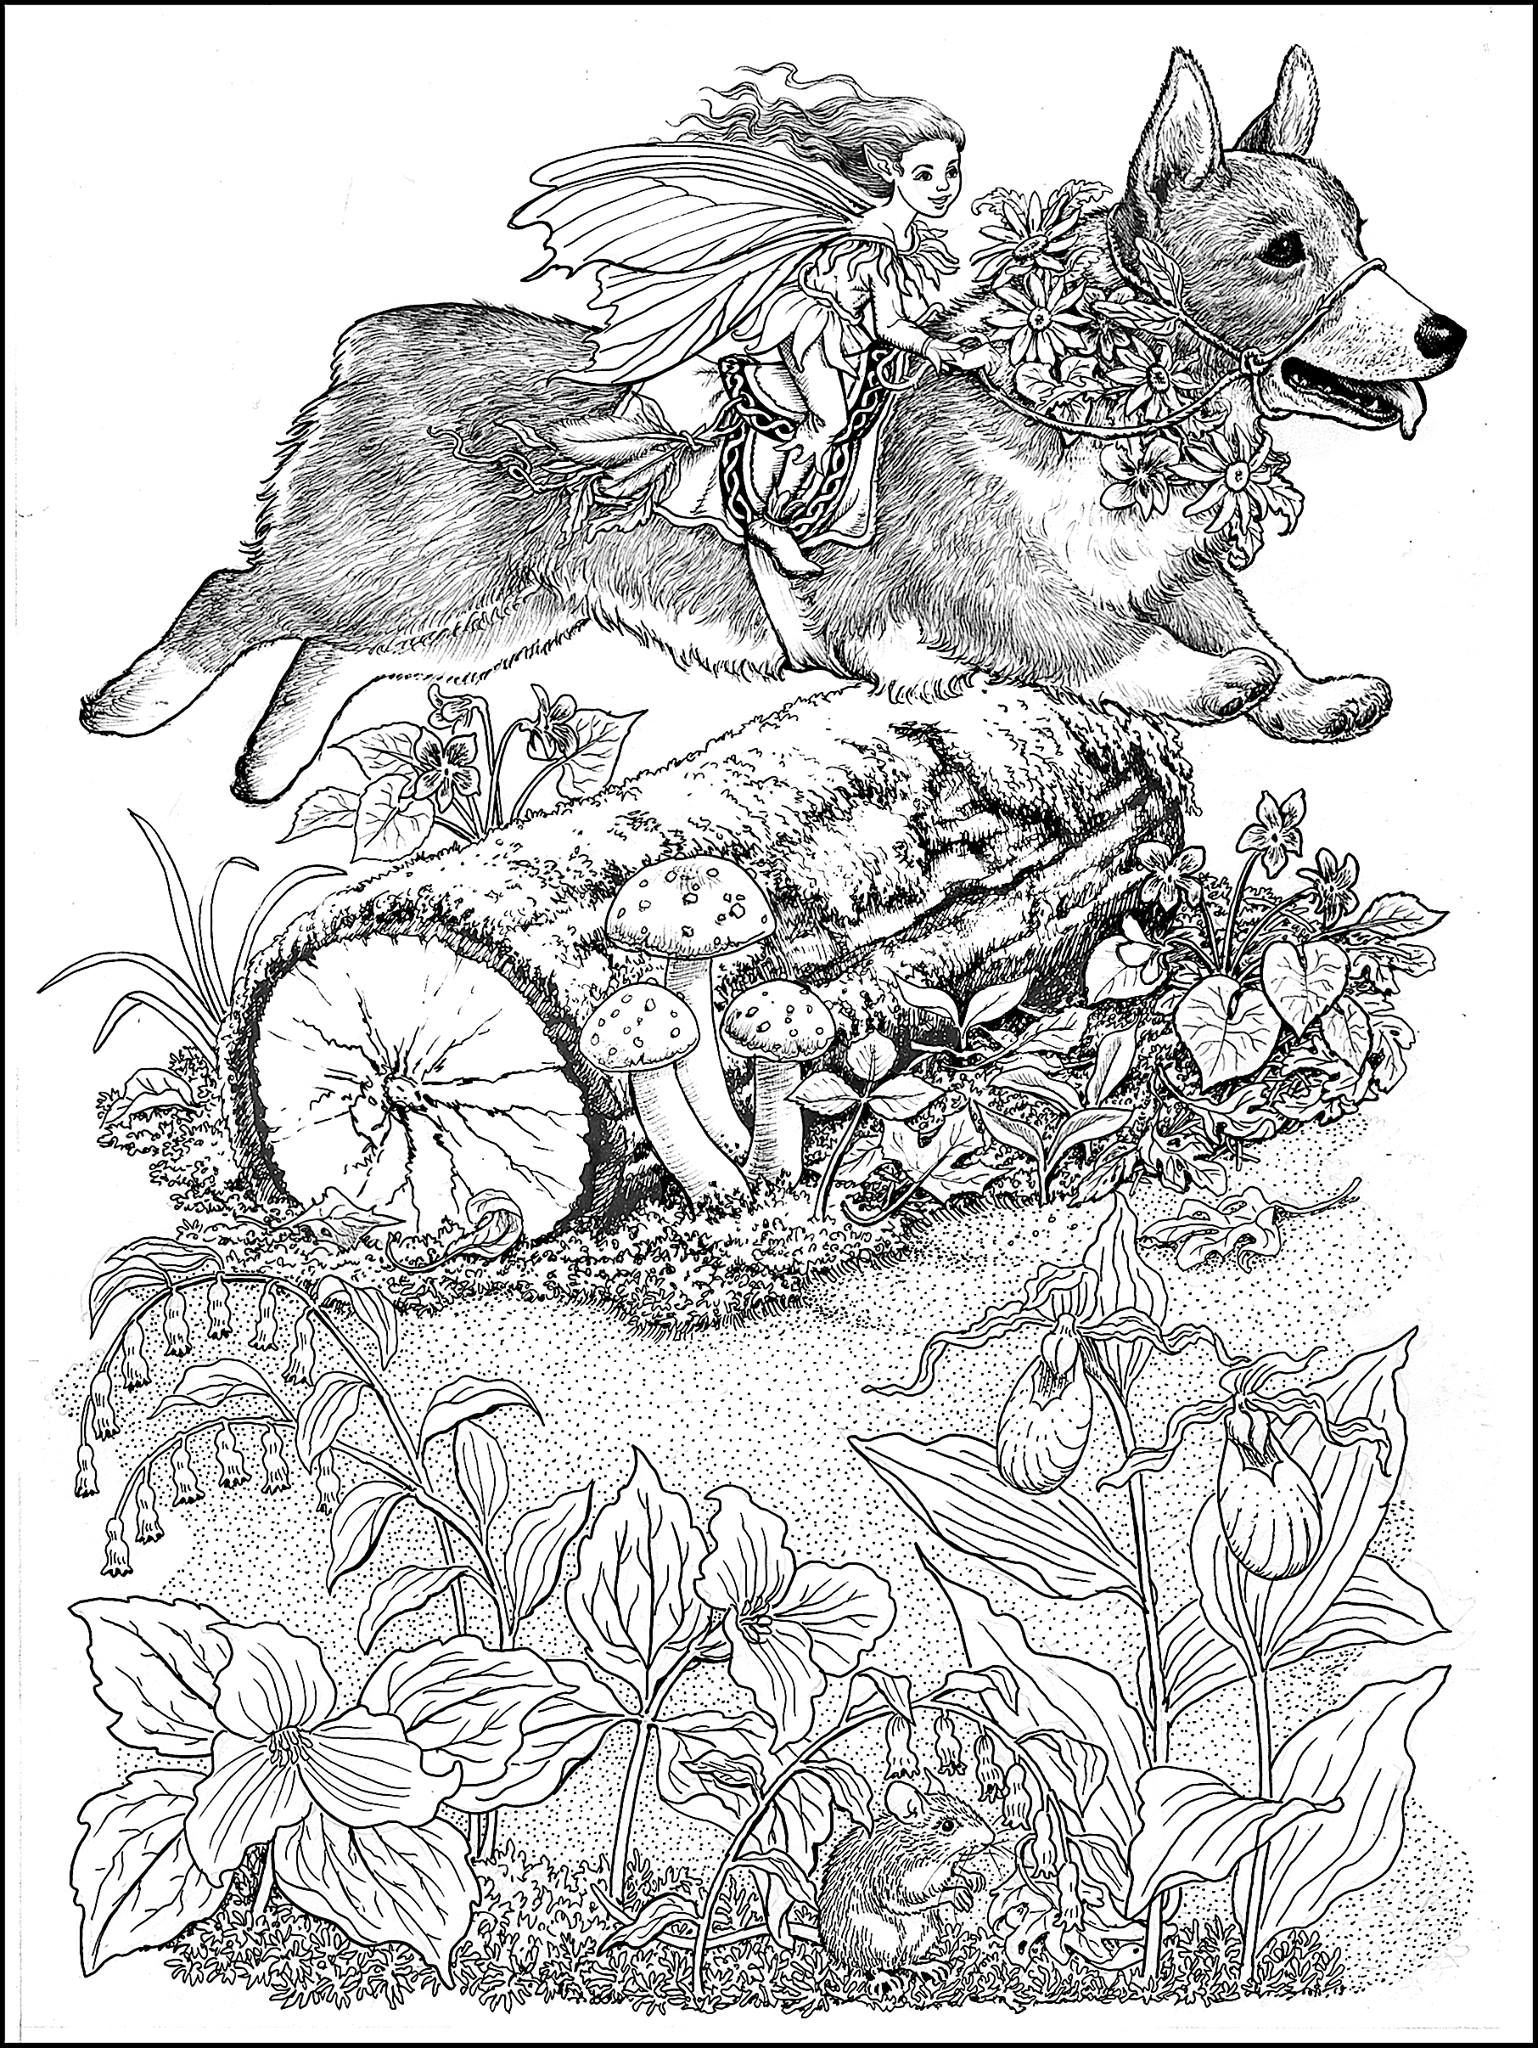 corgi fairy steed from the world of fairies coloring book for